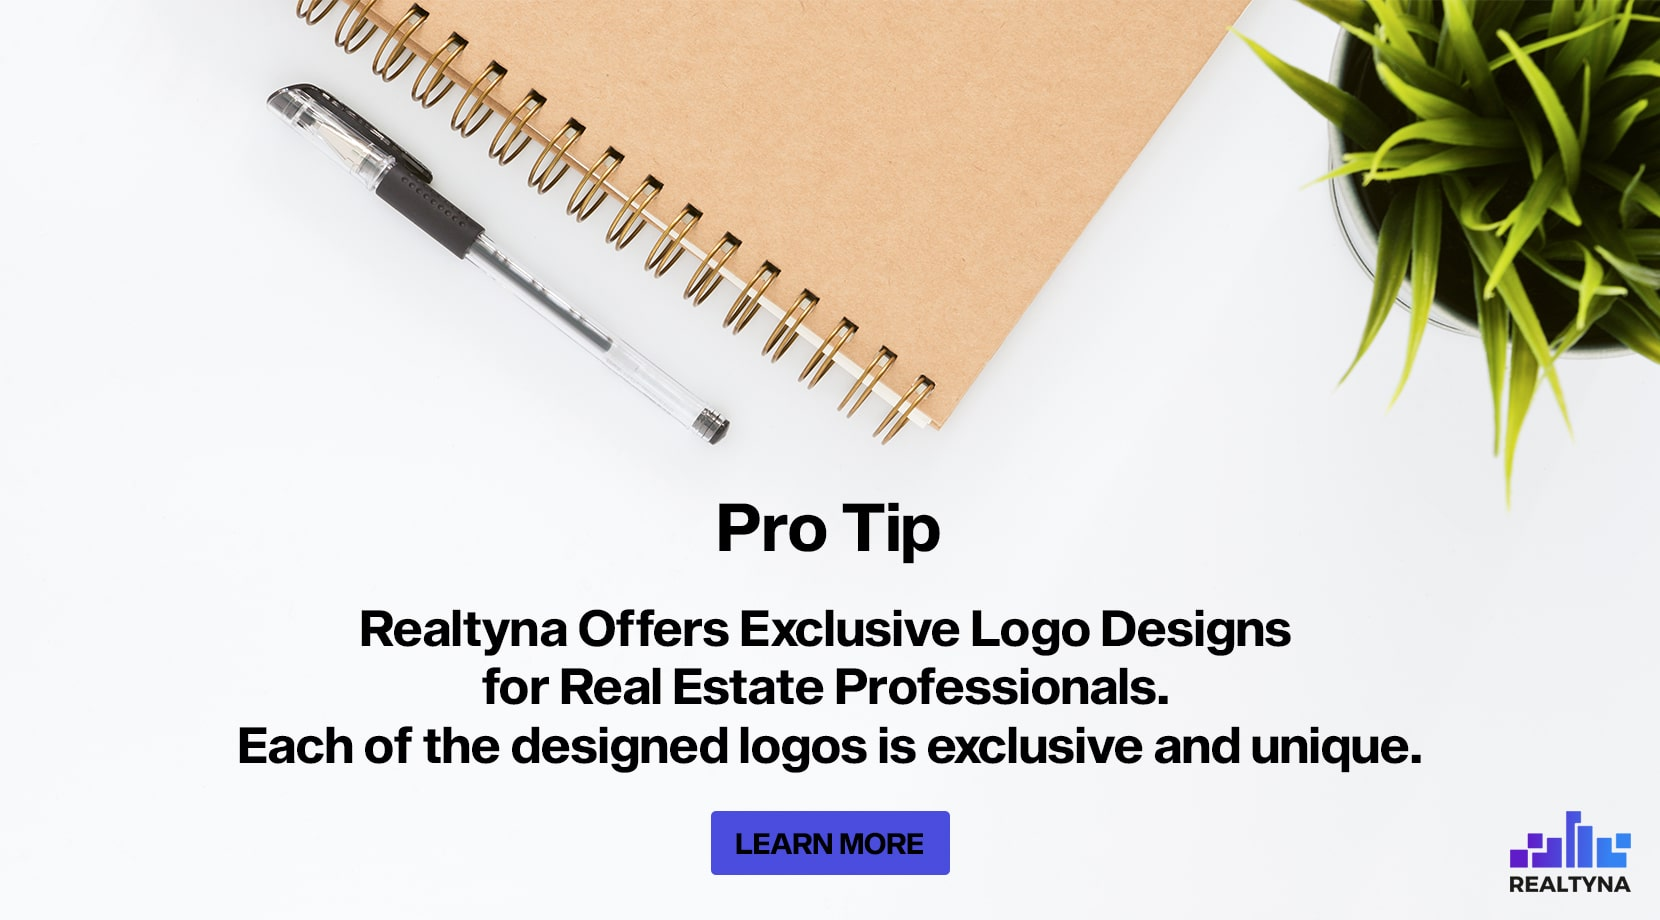 Realtyna's Exclusive Logo Design Service